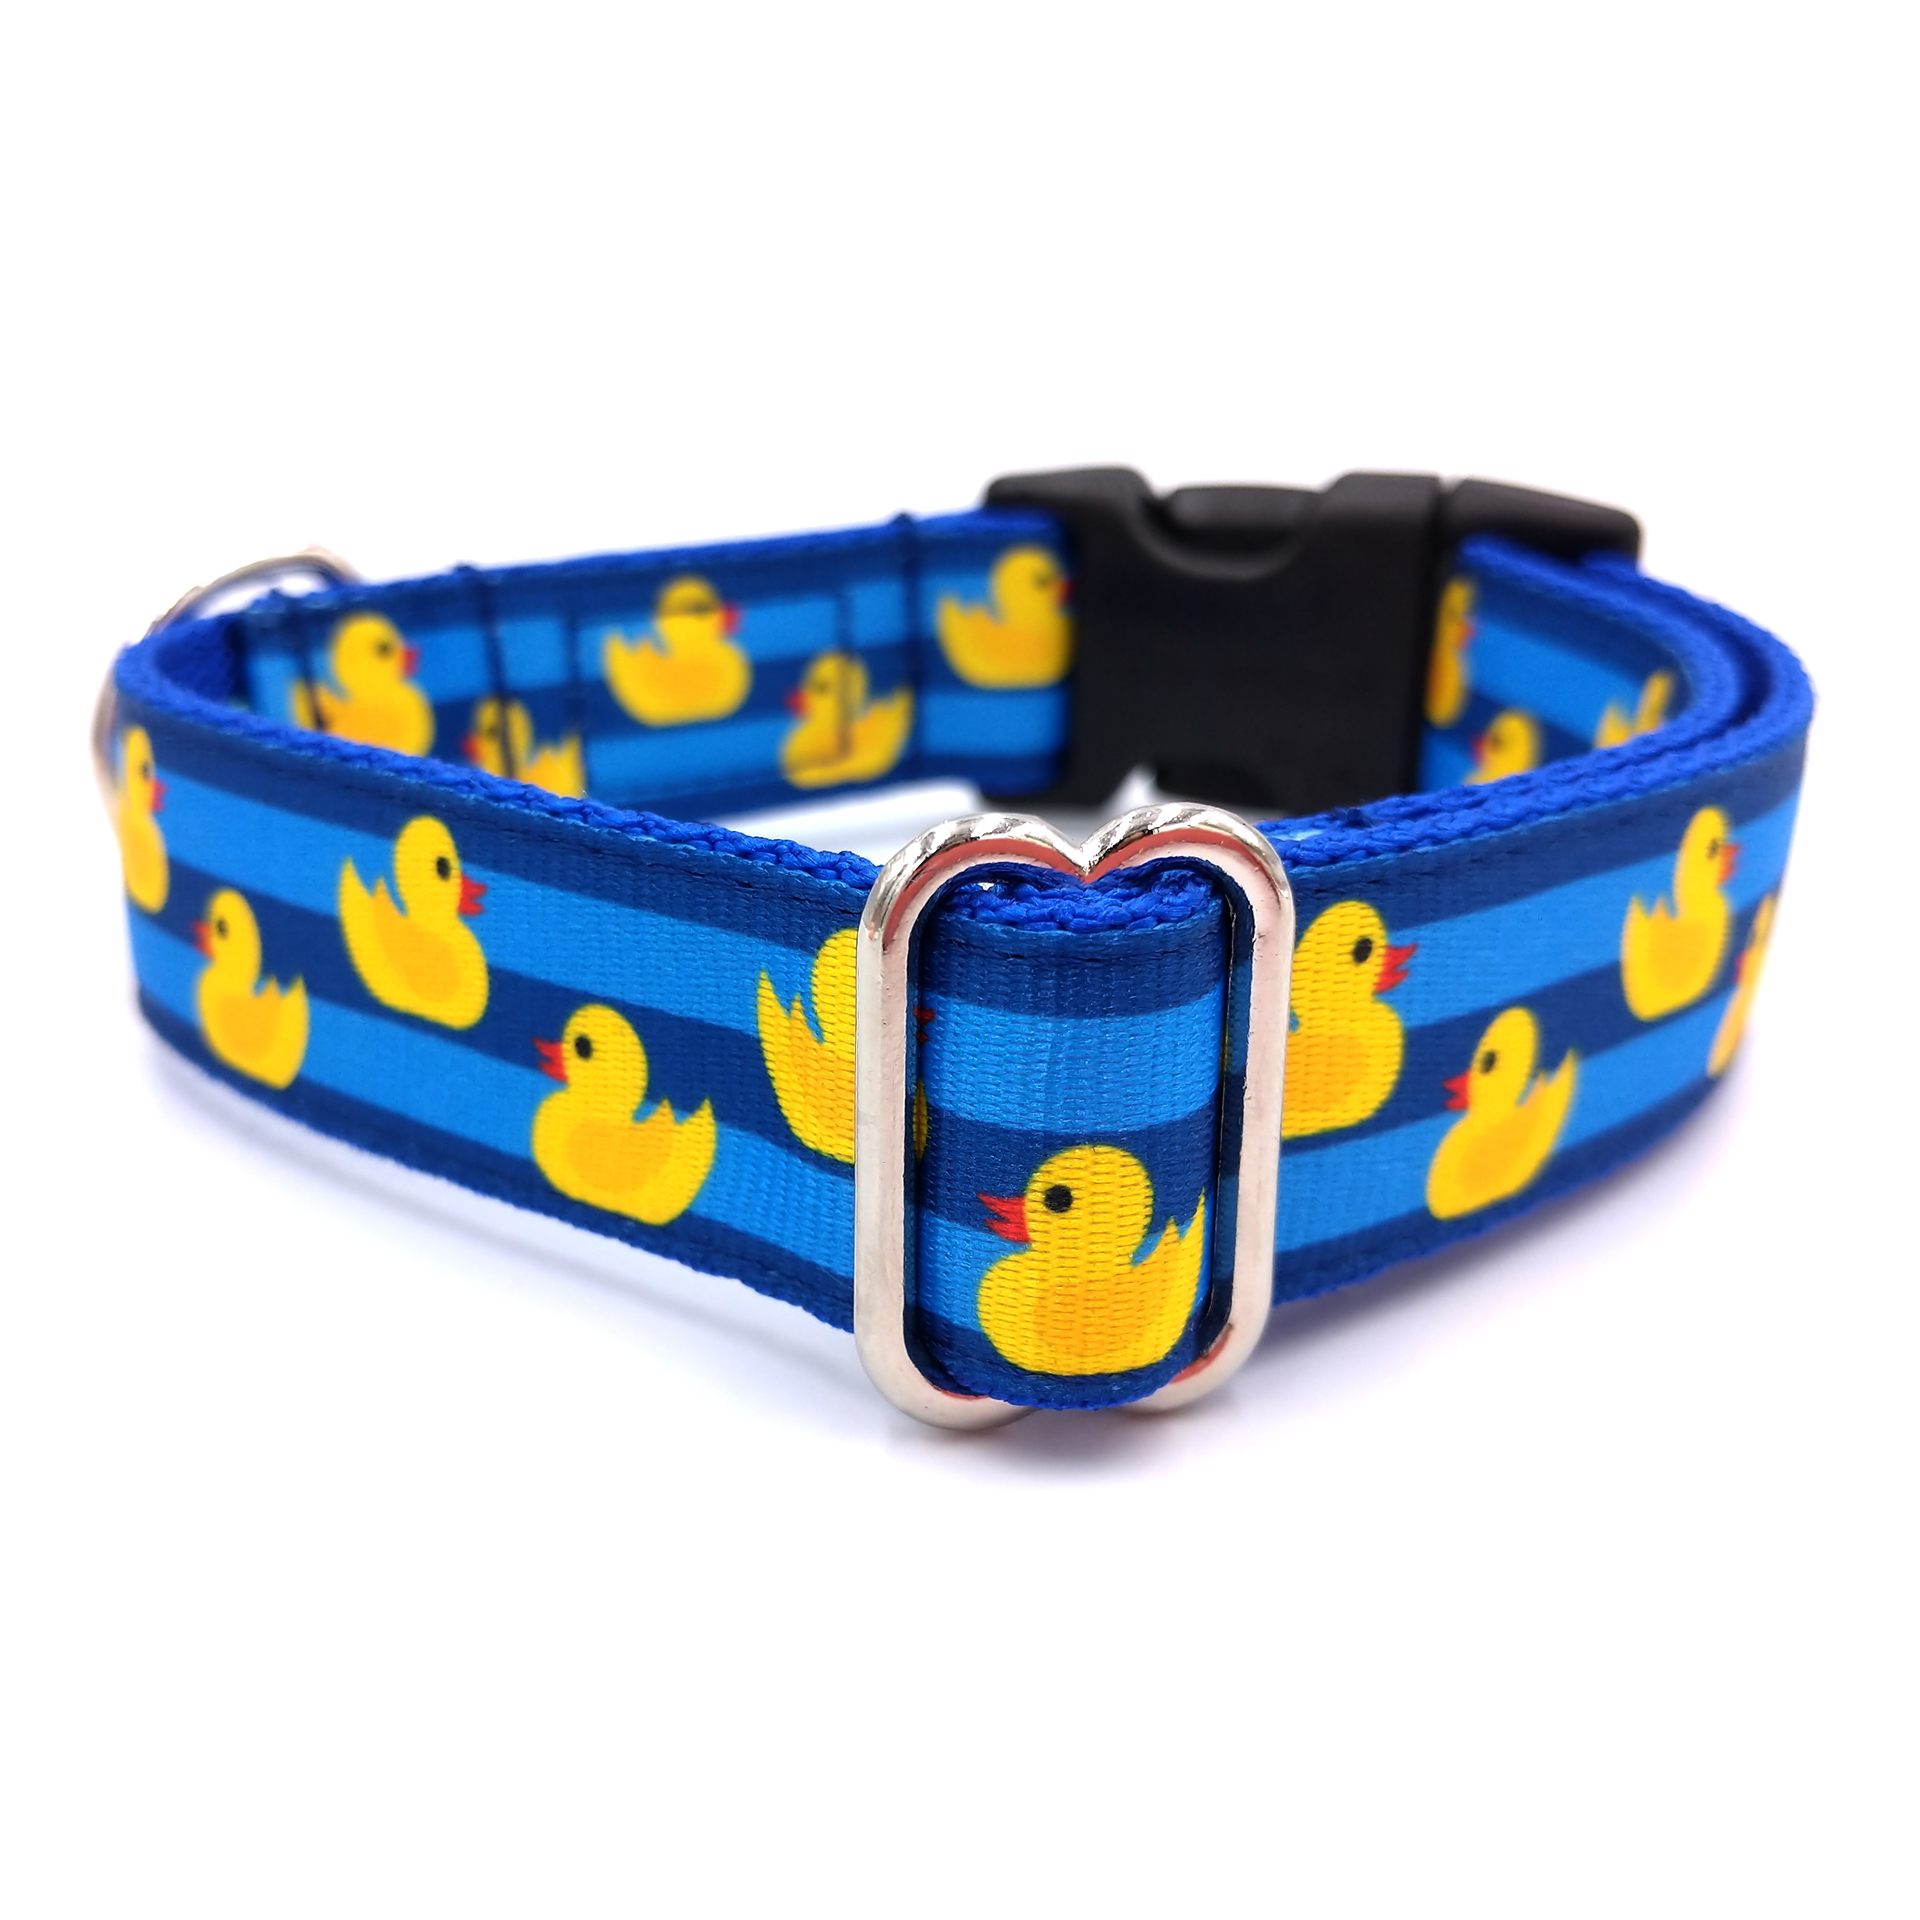 Rubber duck dog collar